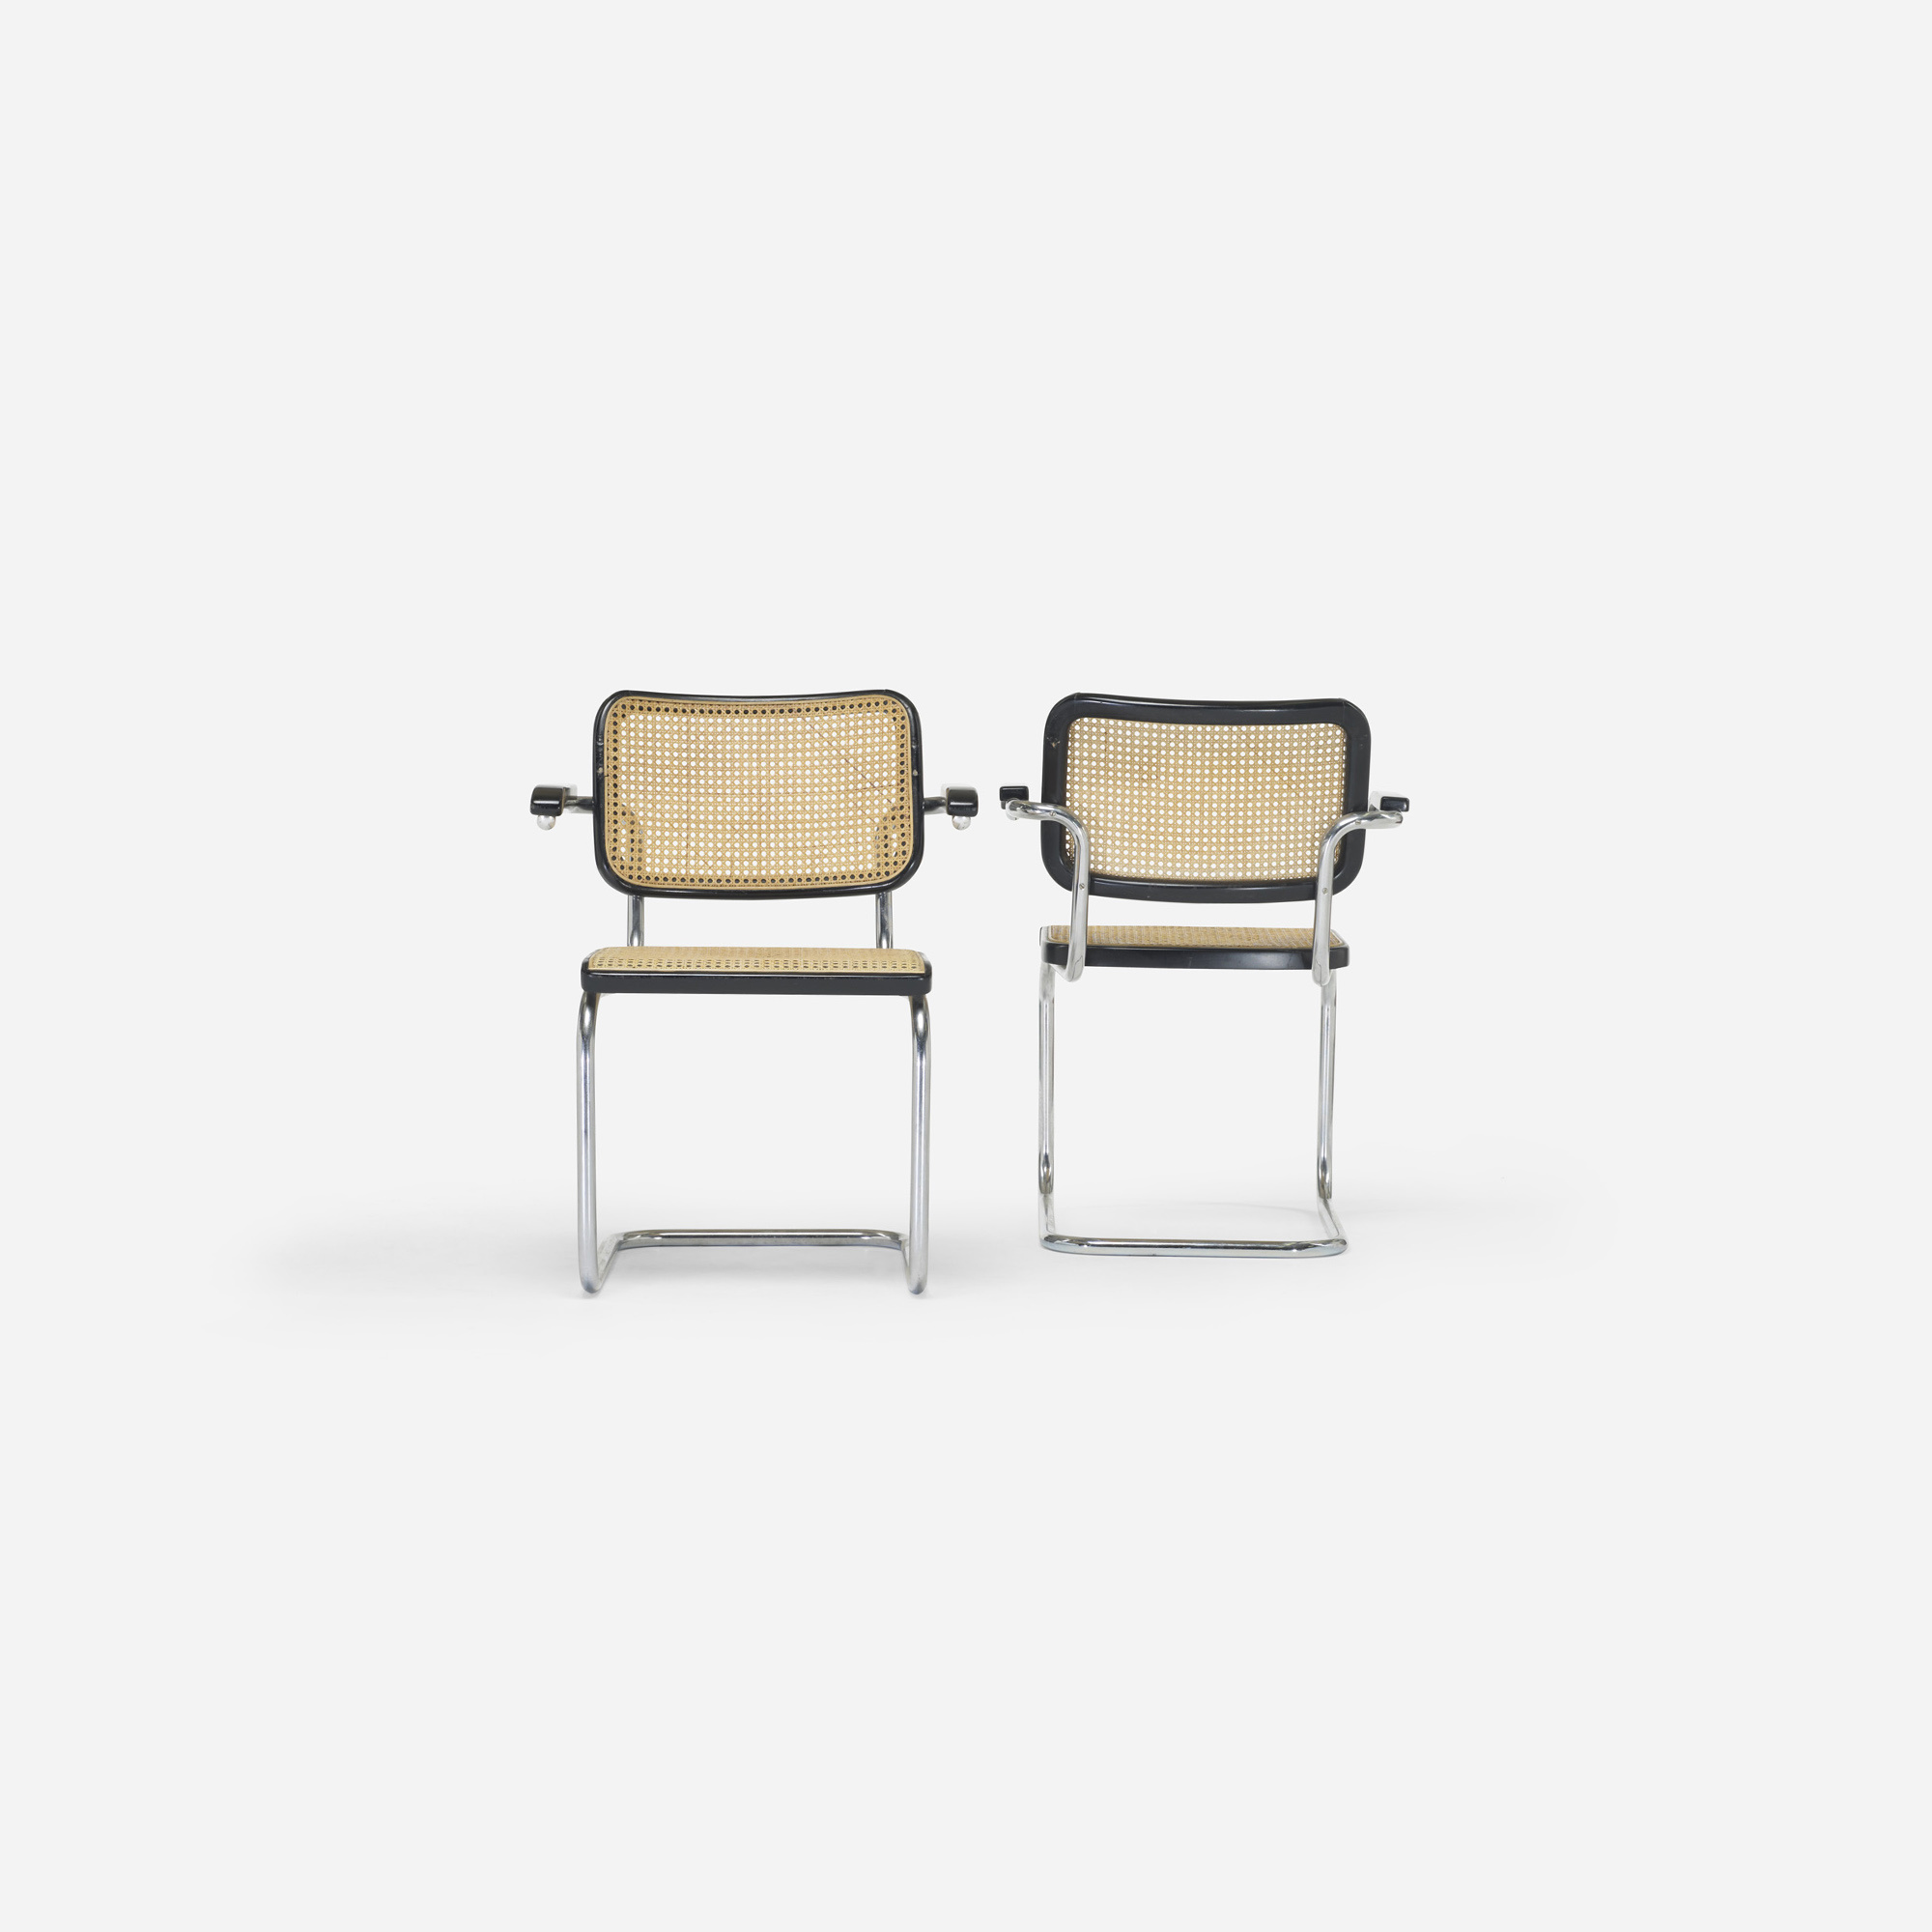 marcel breuer cesca chair with armrests bespoke dining room covers 162 chairs pair mass modern 14 july 2012 3 of 6